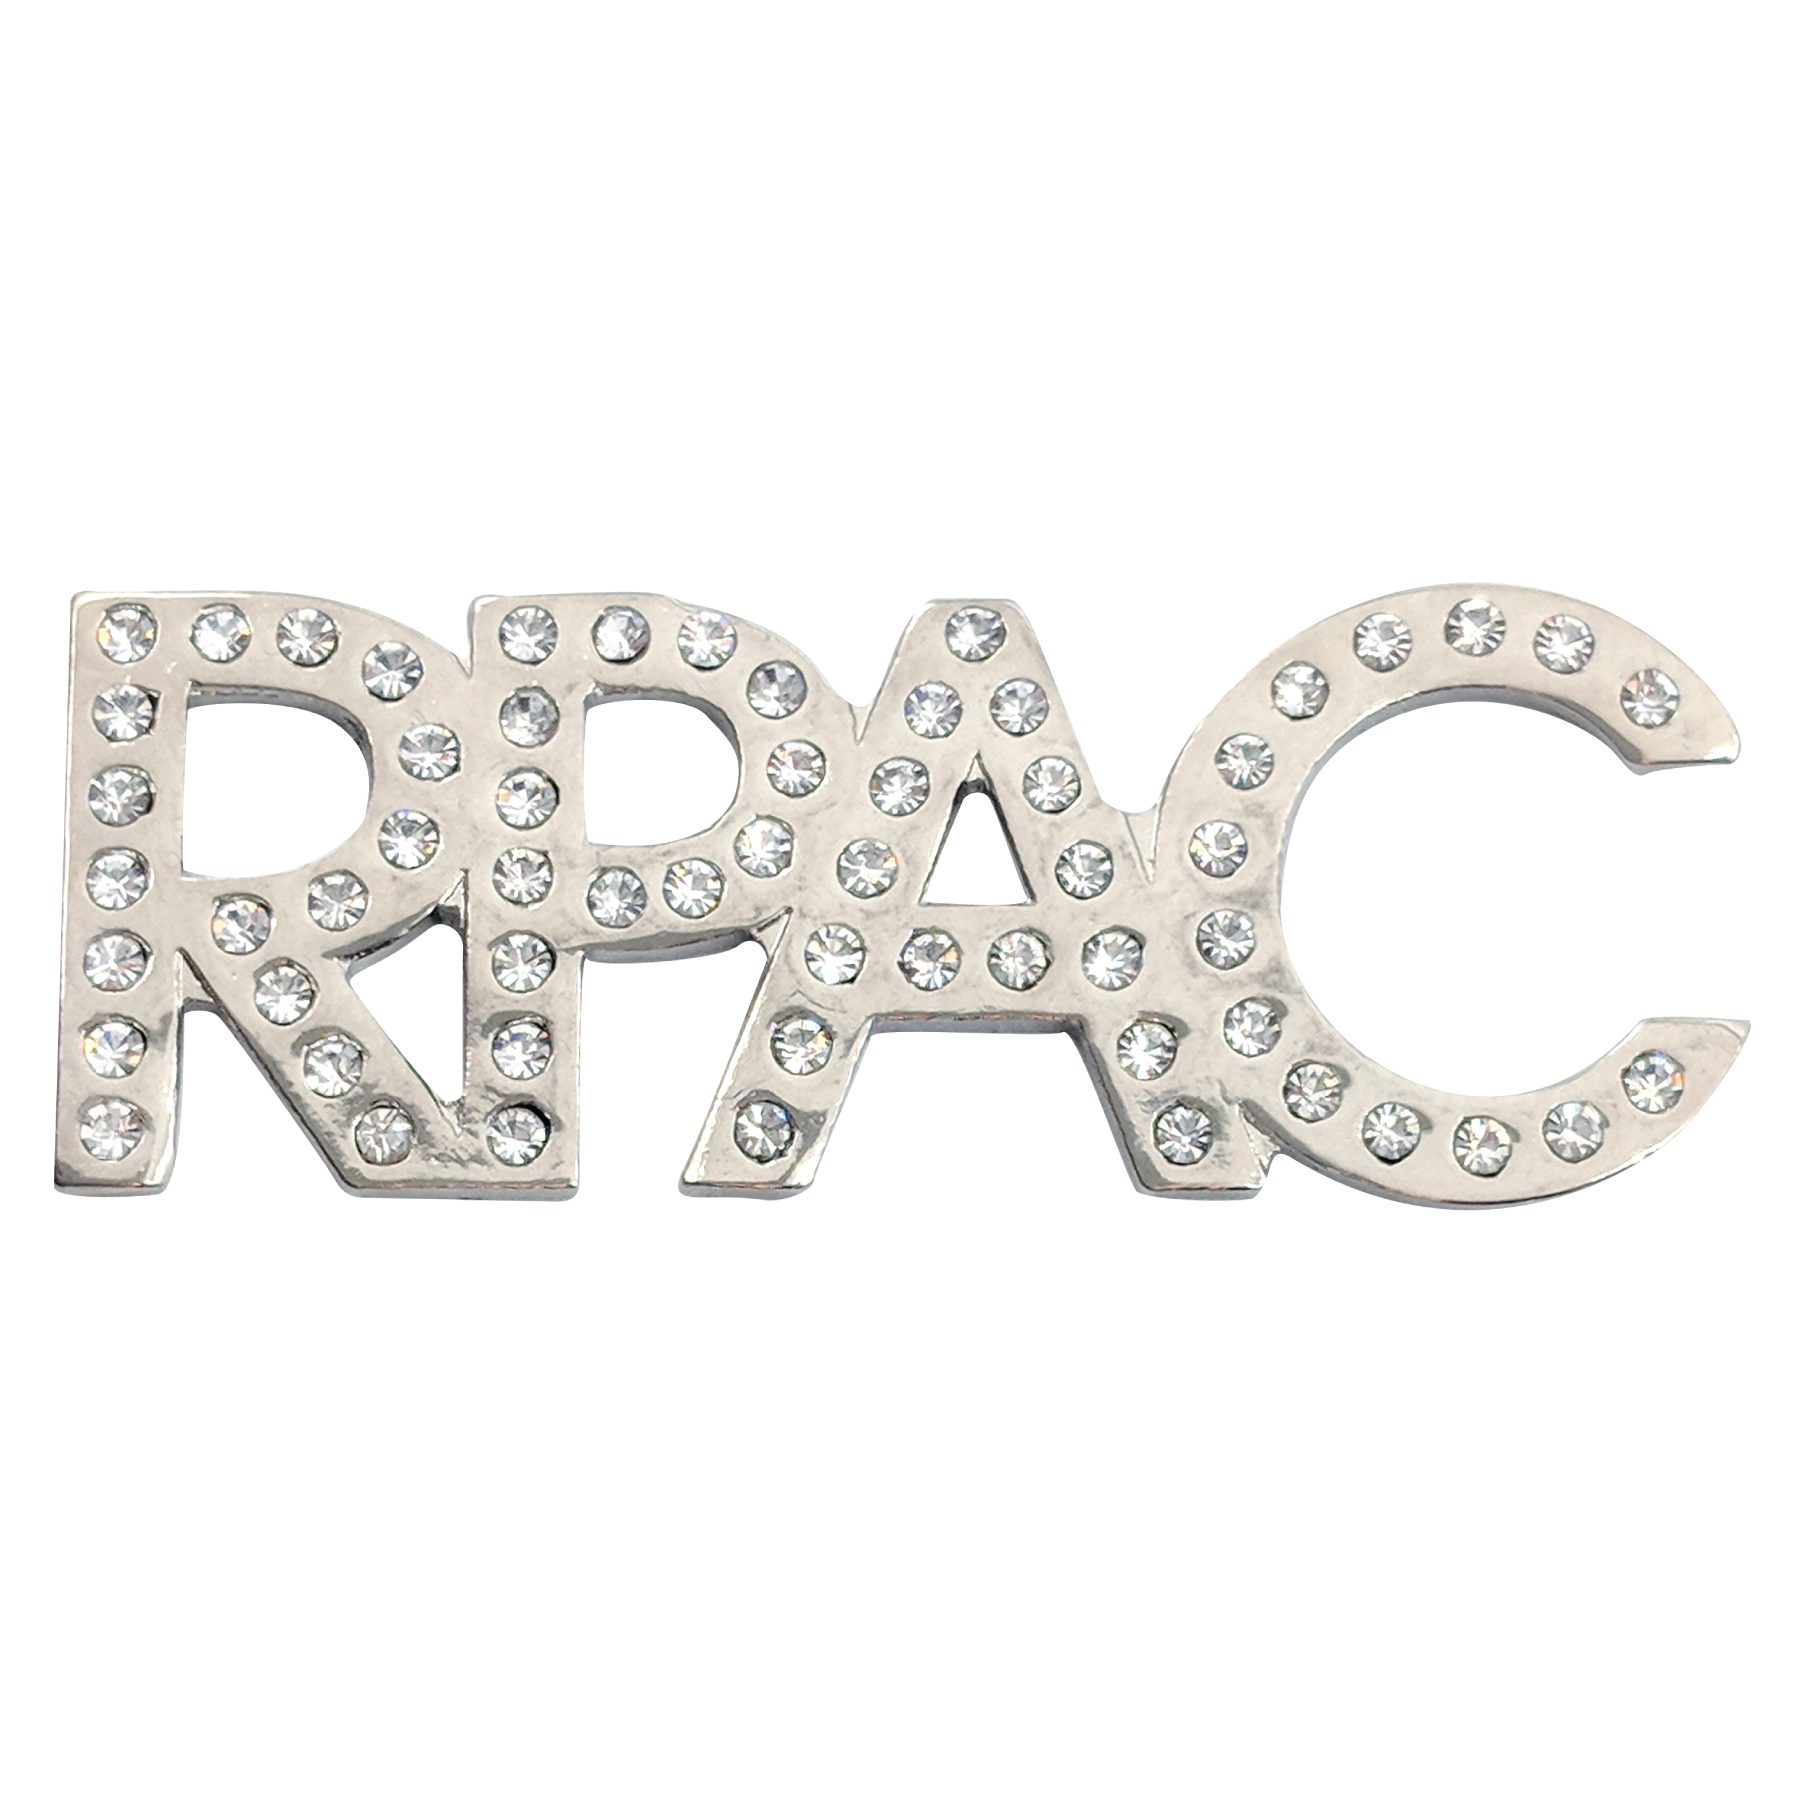 Rhinestone RPAC BLING Pin RPAC, rhinestones, bling, pins, magnets, women, silvers, shimmery, shiny, sparkles, politicals, actions, committees, realtor® party, parties, realtors